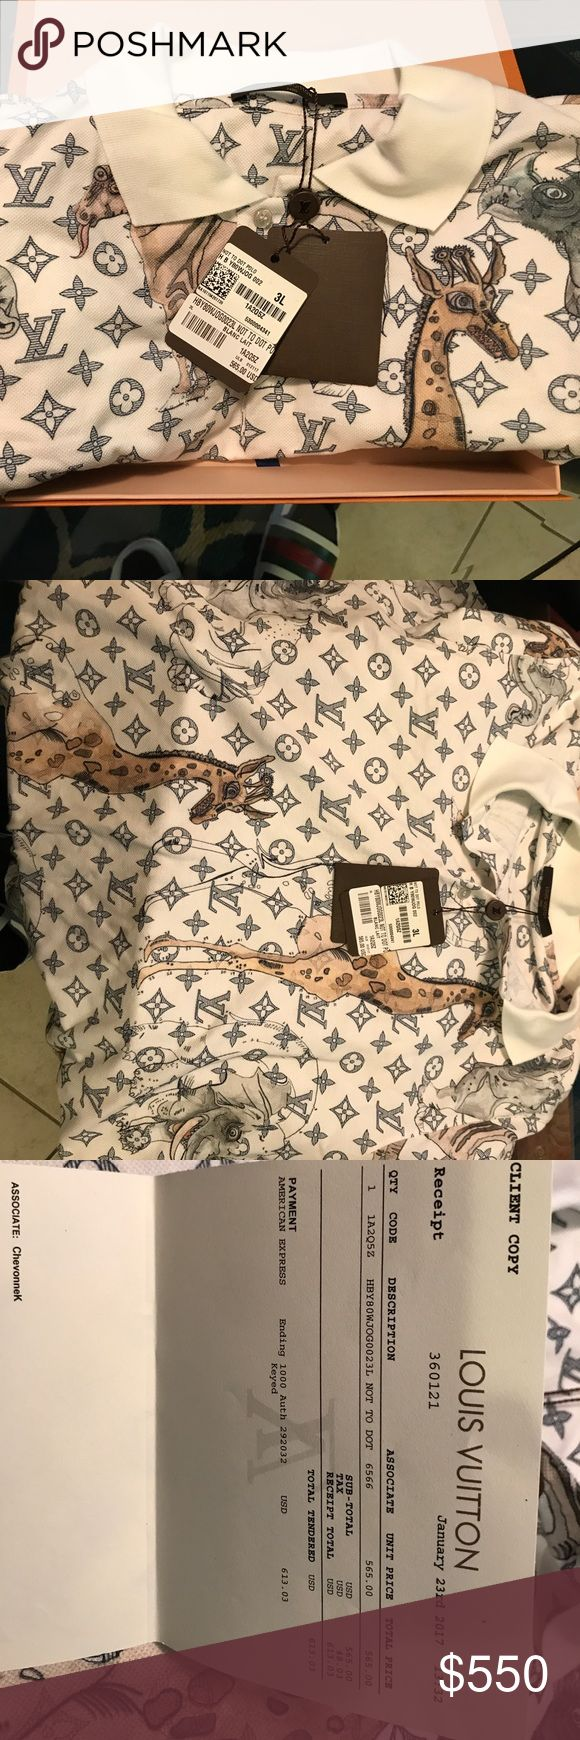 Louis Vuitton 3L men's shirt brand new with tag Brand new limit Louis Vuitton shirt In 3L Louis Vuitton Shirts Polos